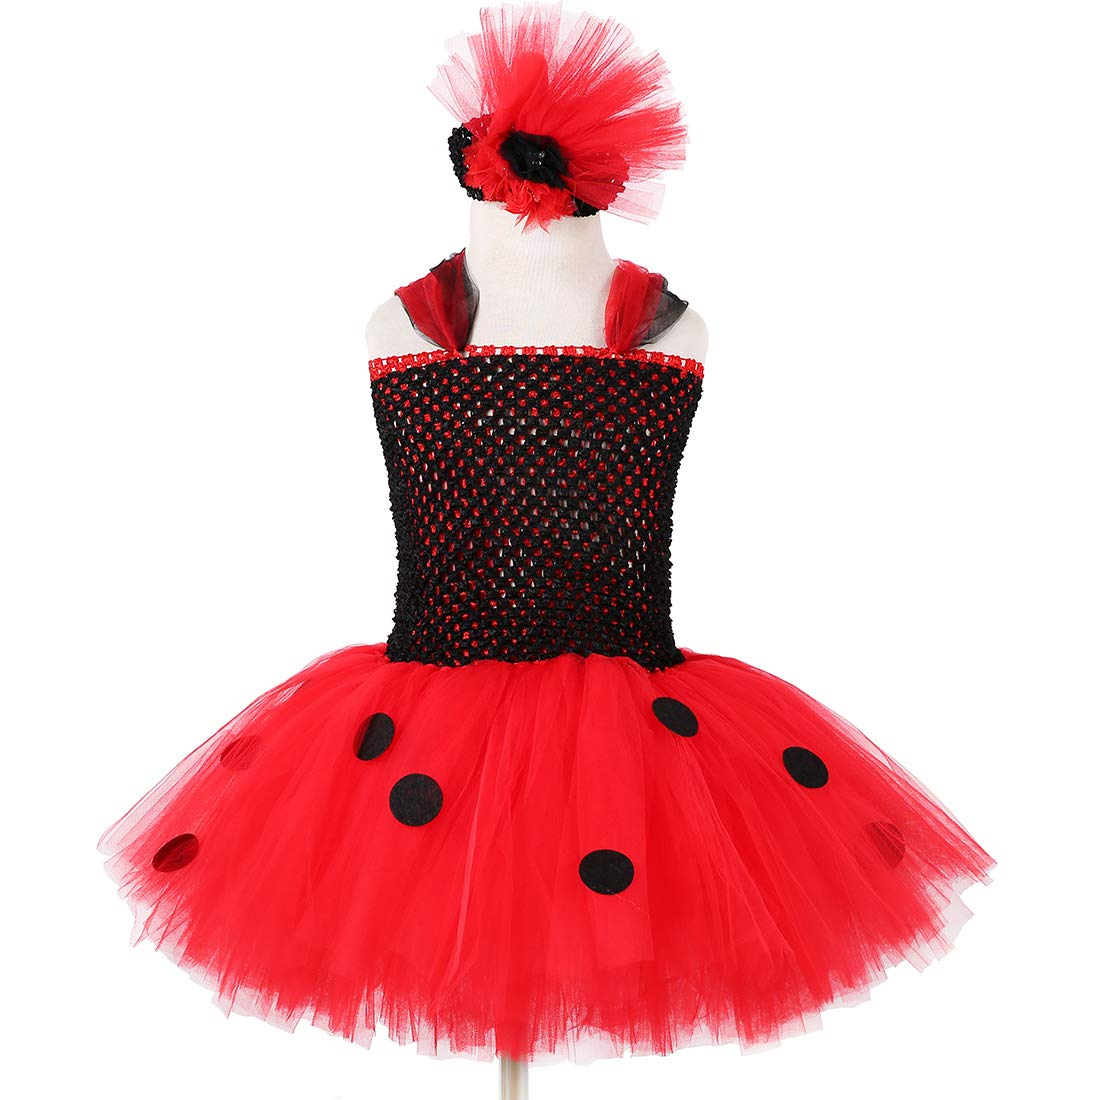 9d031dcd7c0 Ladybug Tutu Dress for Girls Halloween Birthday Party Outfit